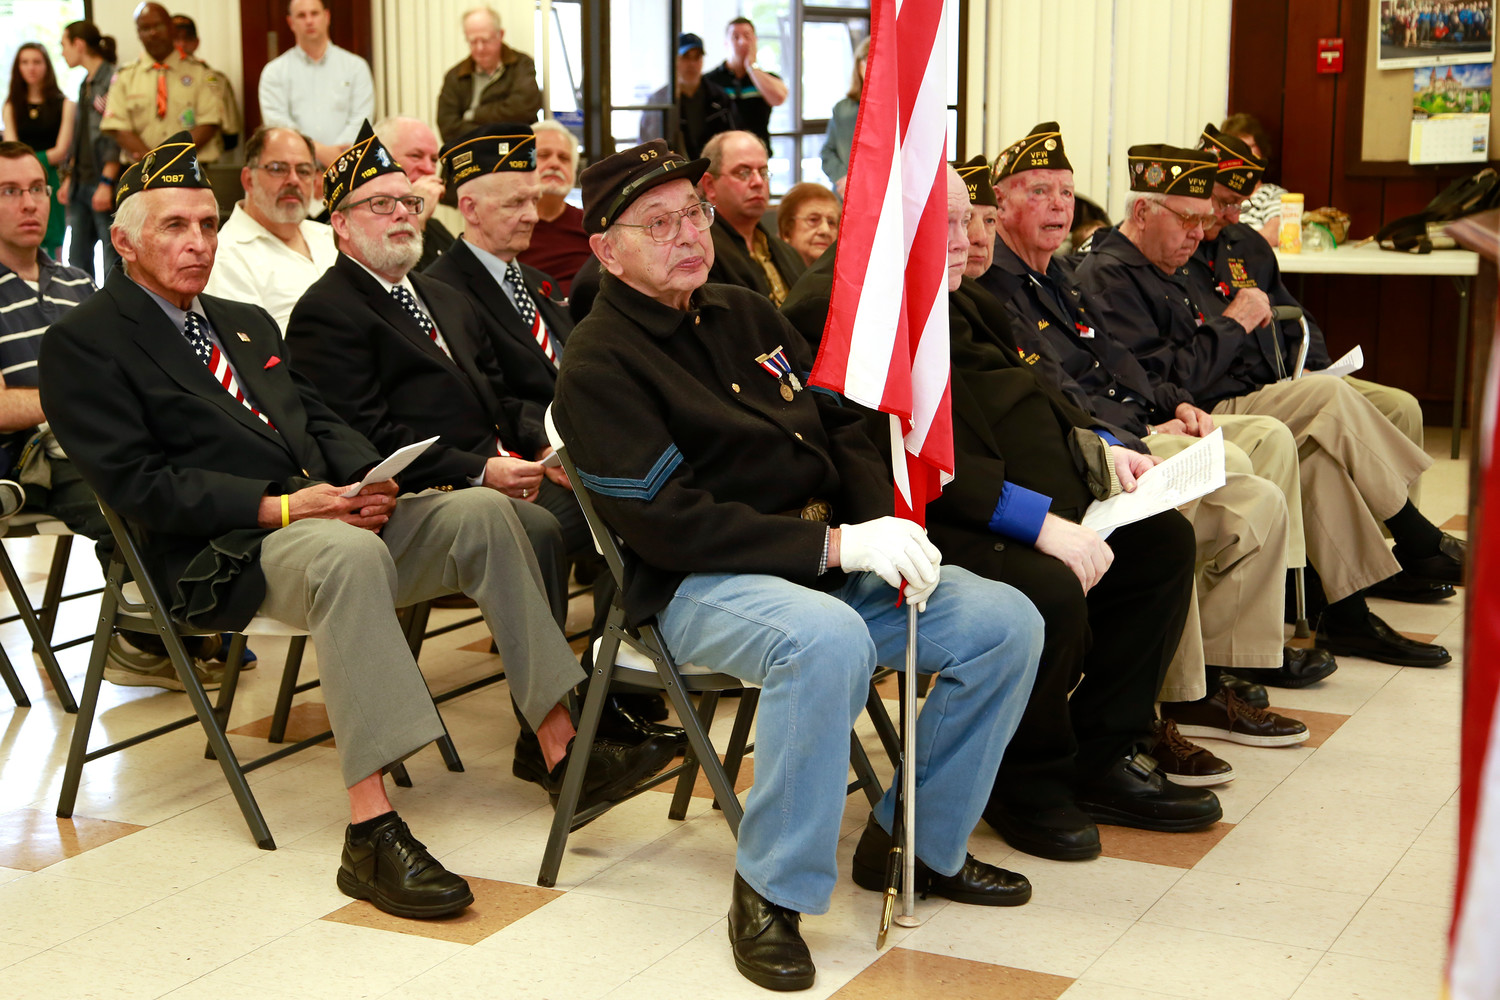 West Hempstead's American Legion listened as speakers discussed the importance of honoring our veterans on Memorial Day.